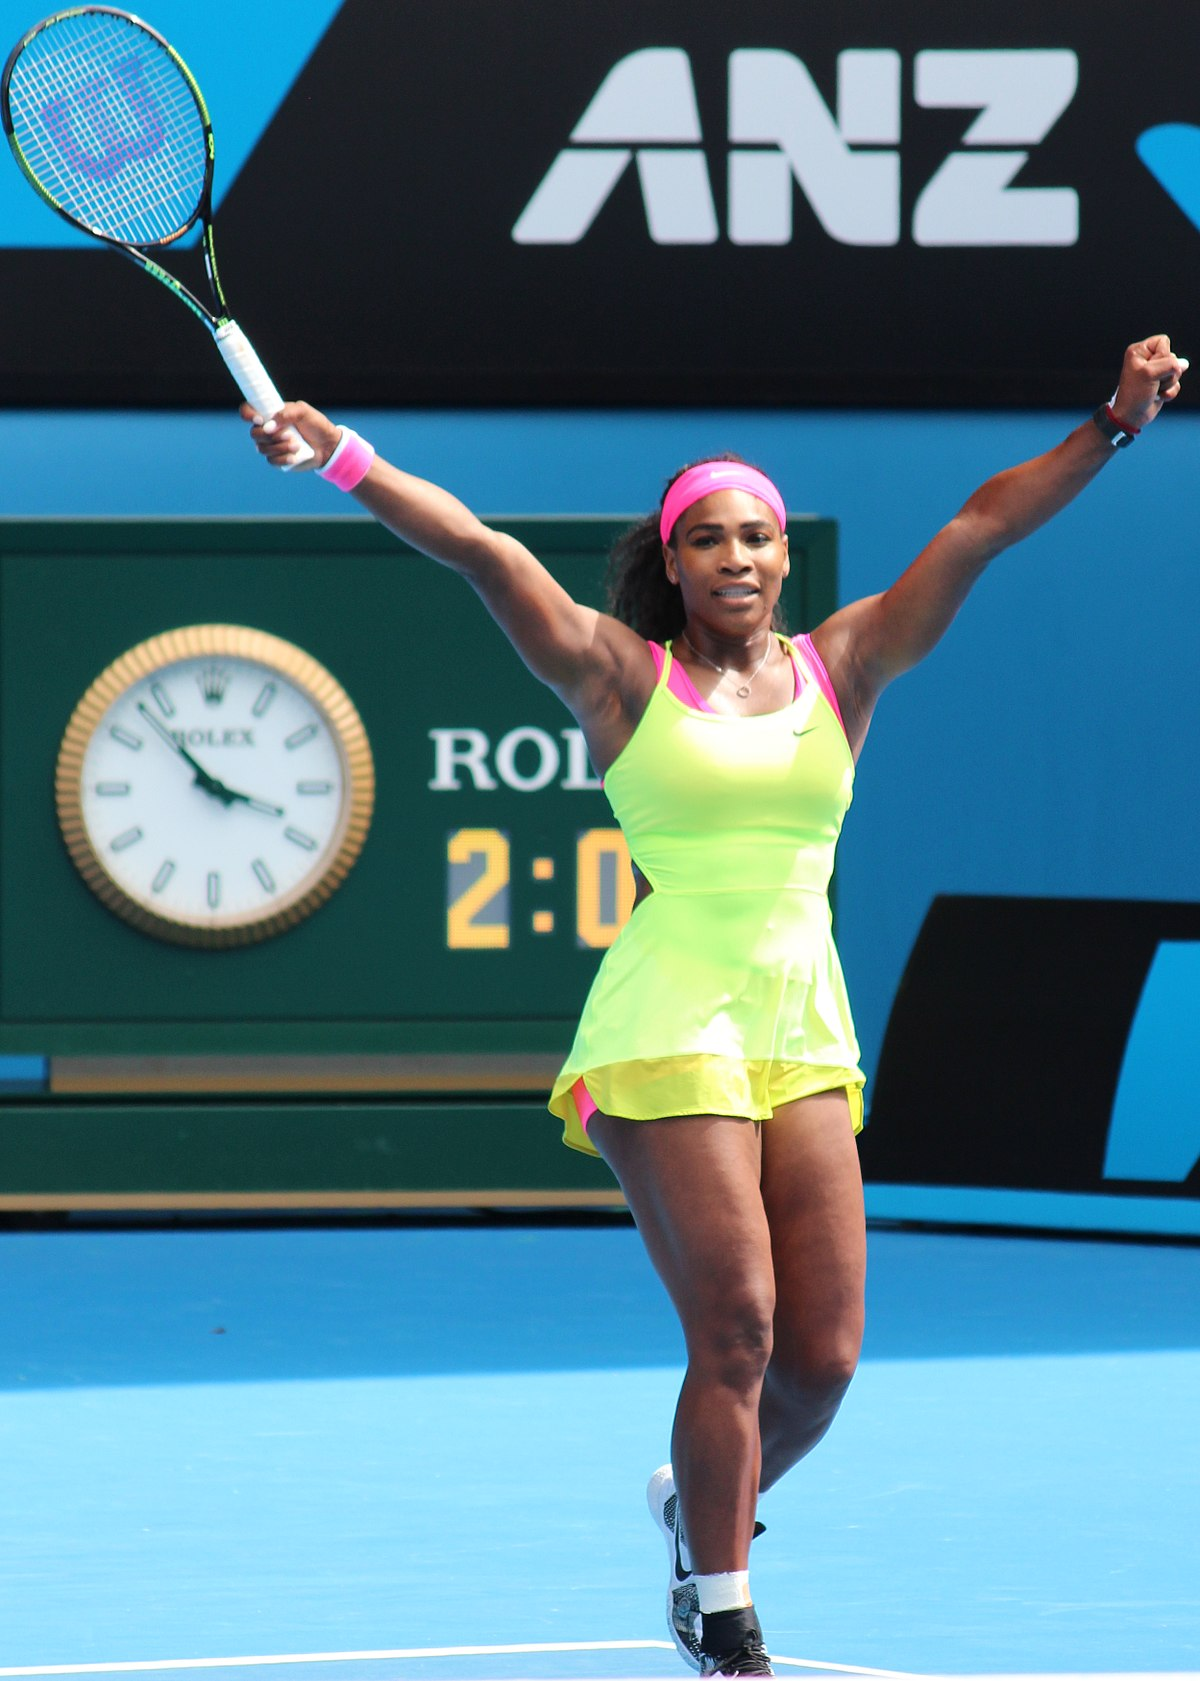 2015 serena williams tennis season wikipedia